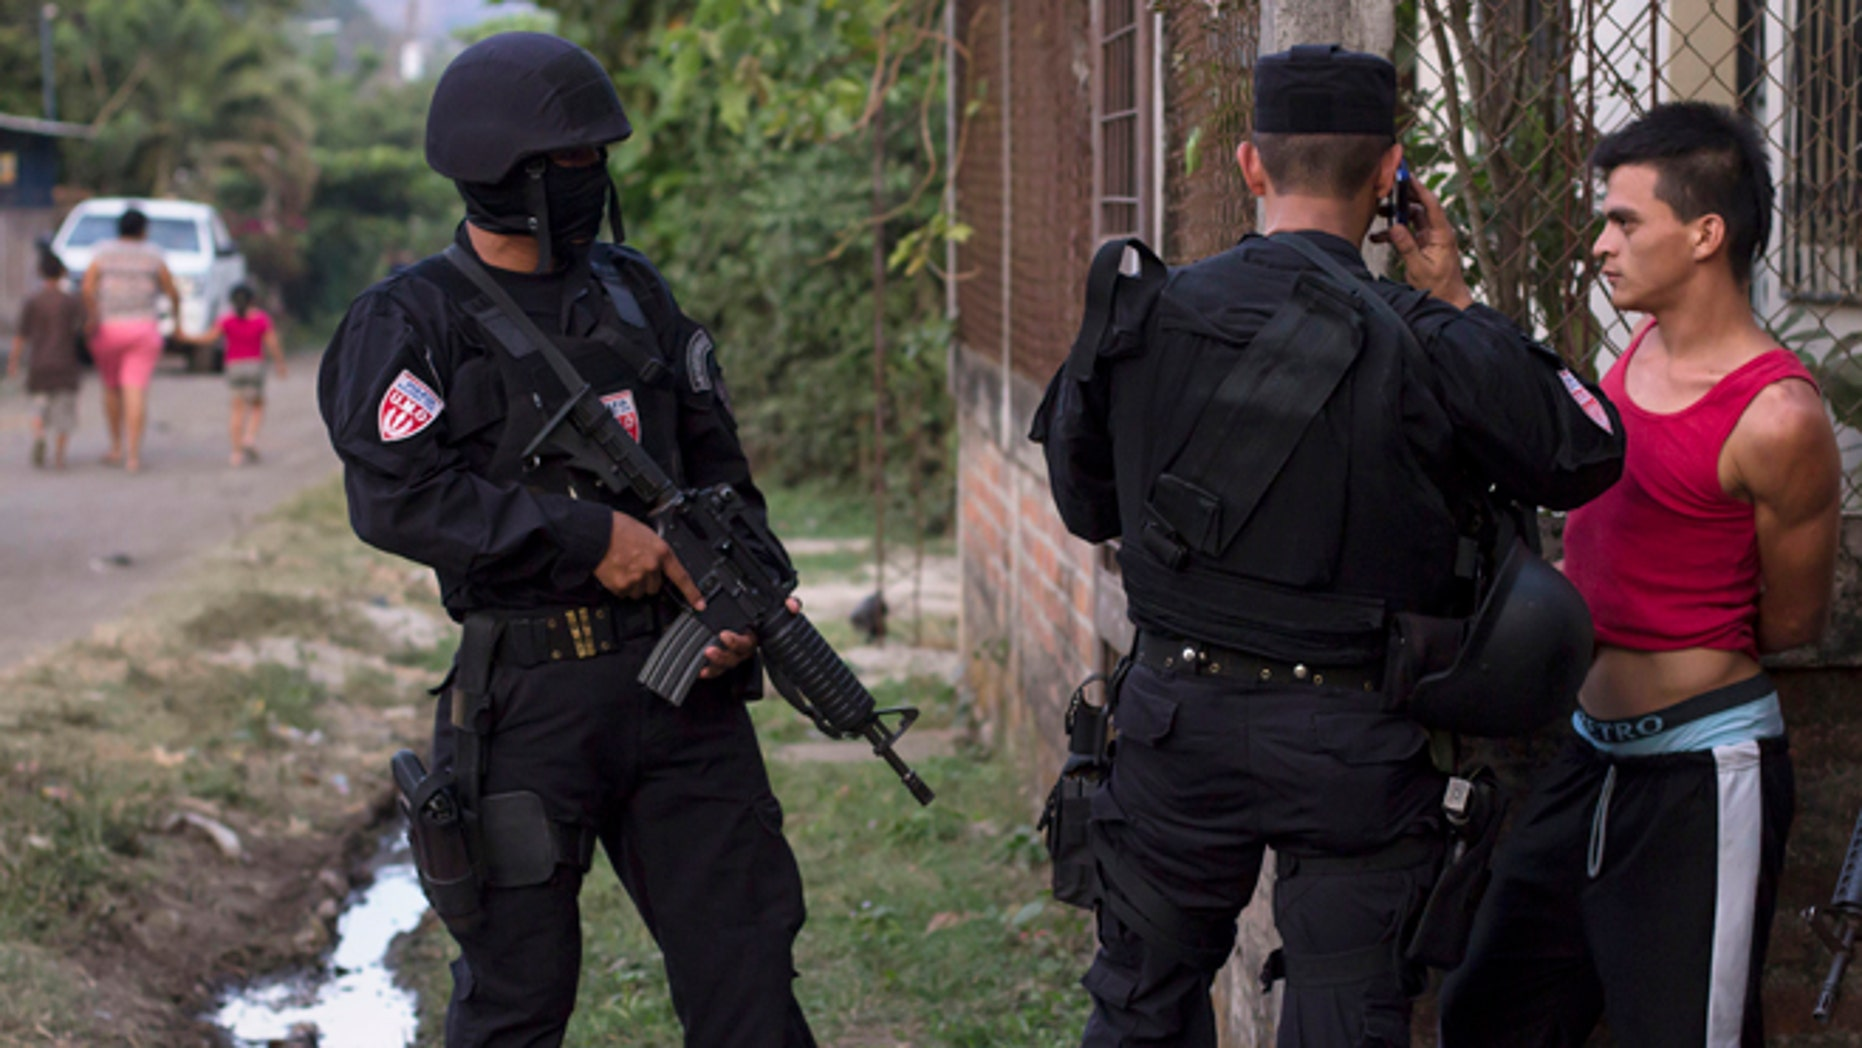 In this April 1, 2015 photo, a man is detained by police special forces in the town of San Juan Opico, El Salvador.